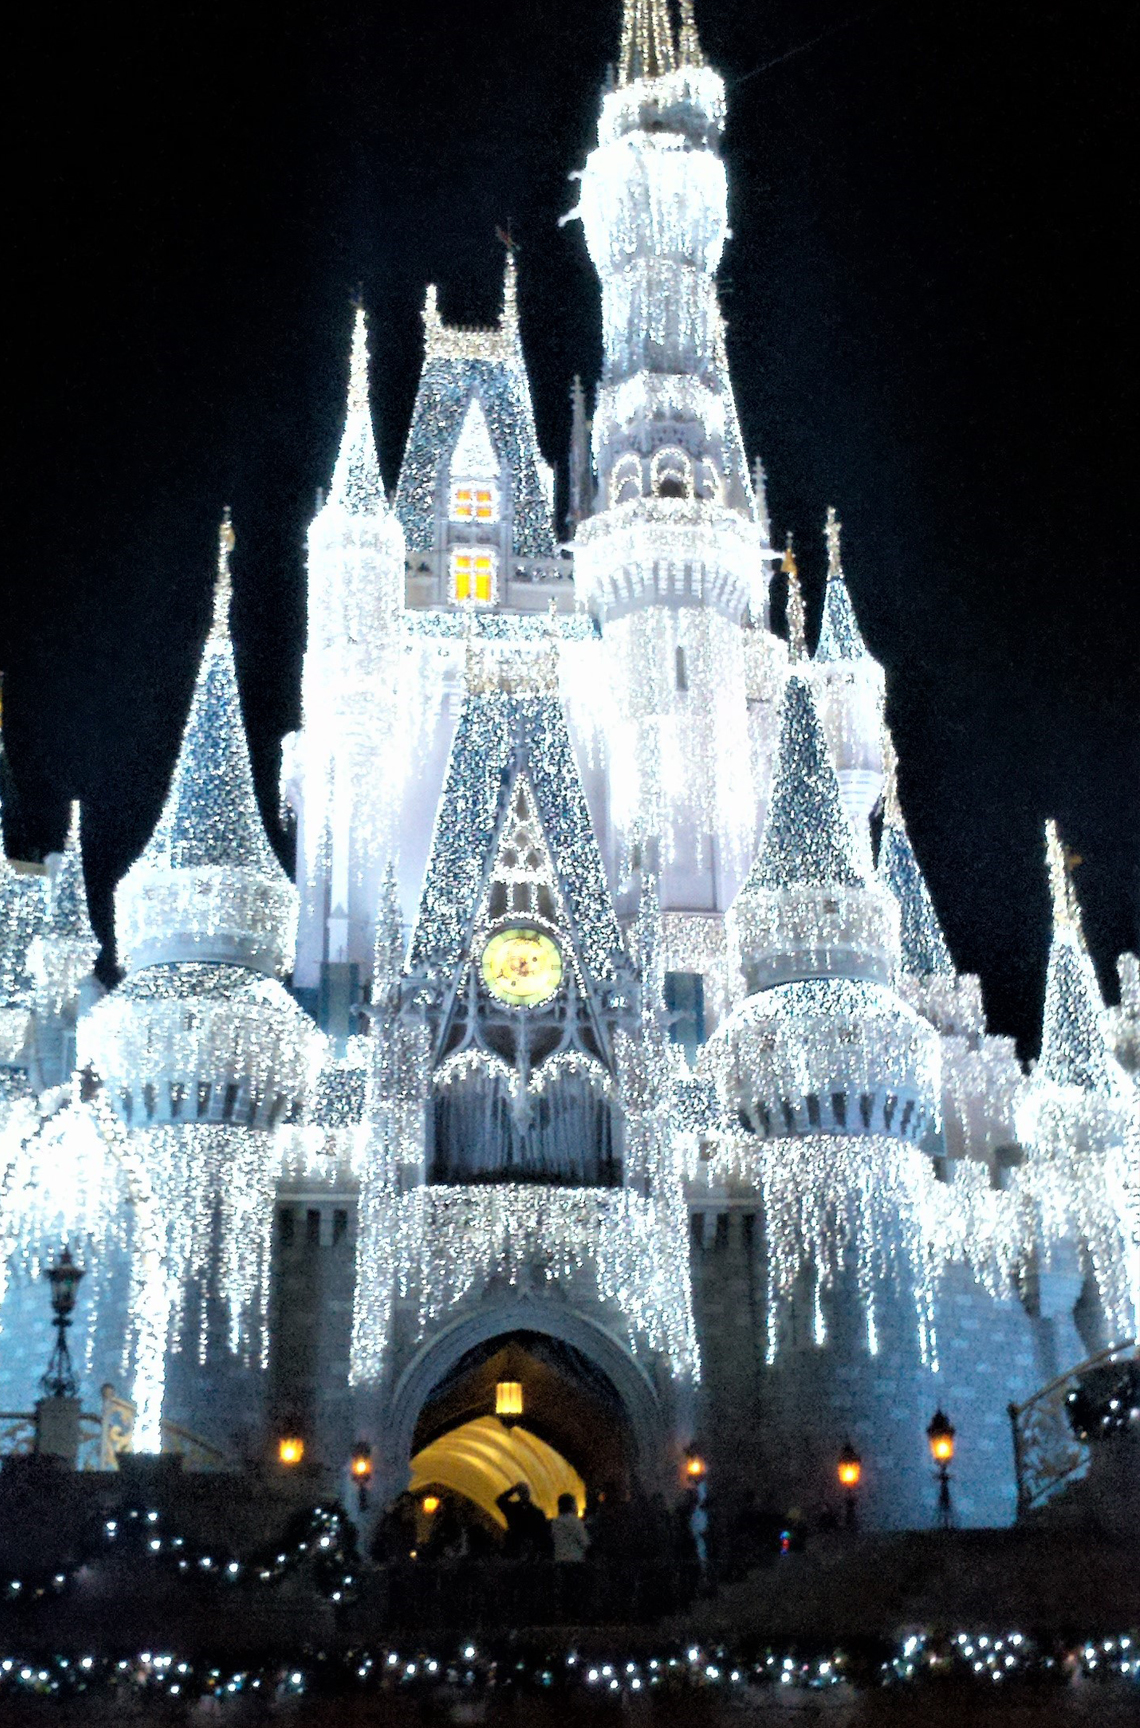 Teri Aitchison enjoying Cinderella's Castle dressed in Holiday finery.